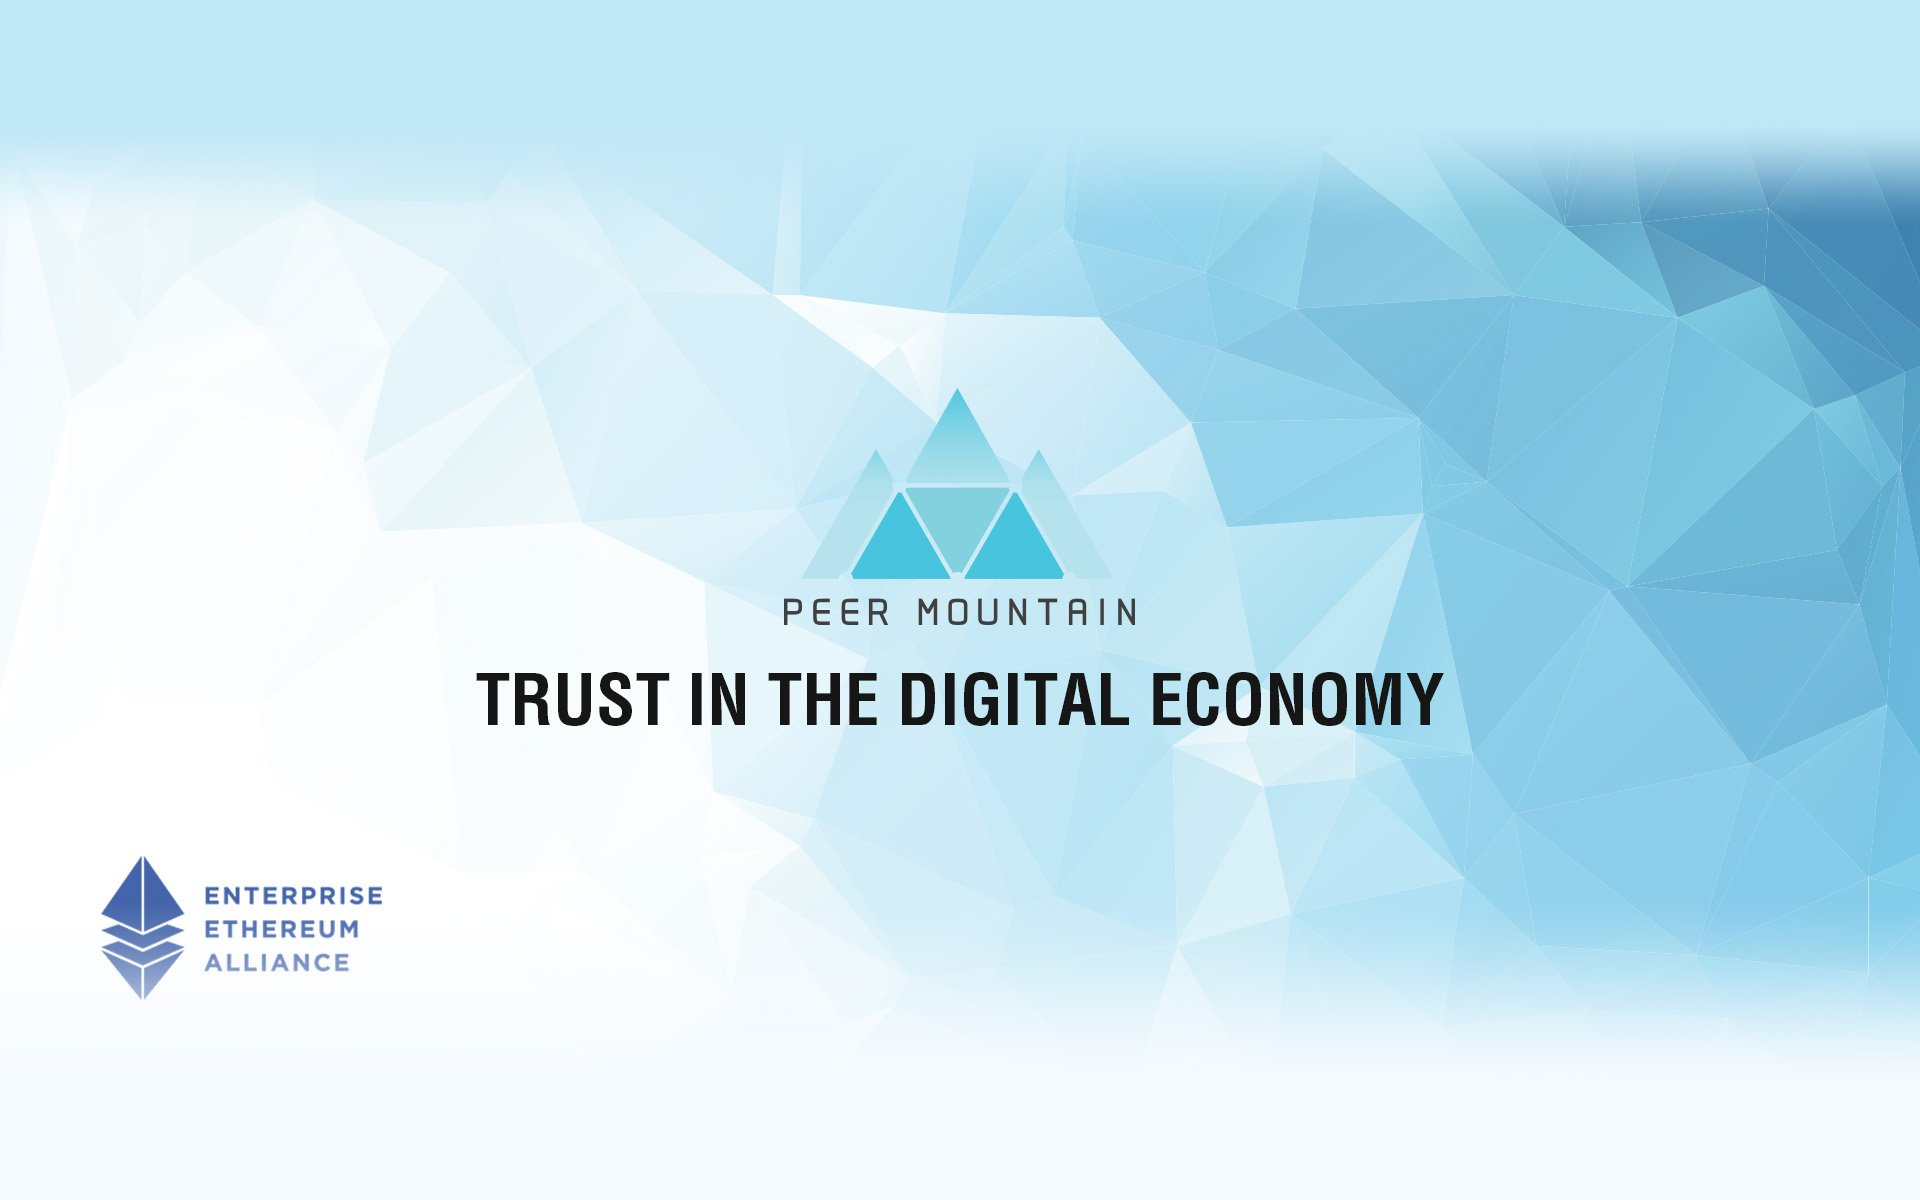 Peer Mountain Joins the Largest Open-Source Blockchain Initiative, Enterprise Ethereum Alliance